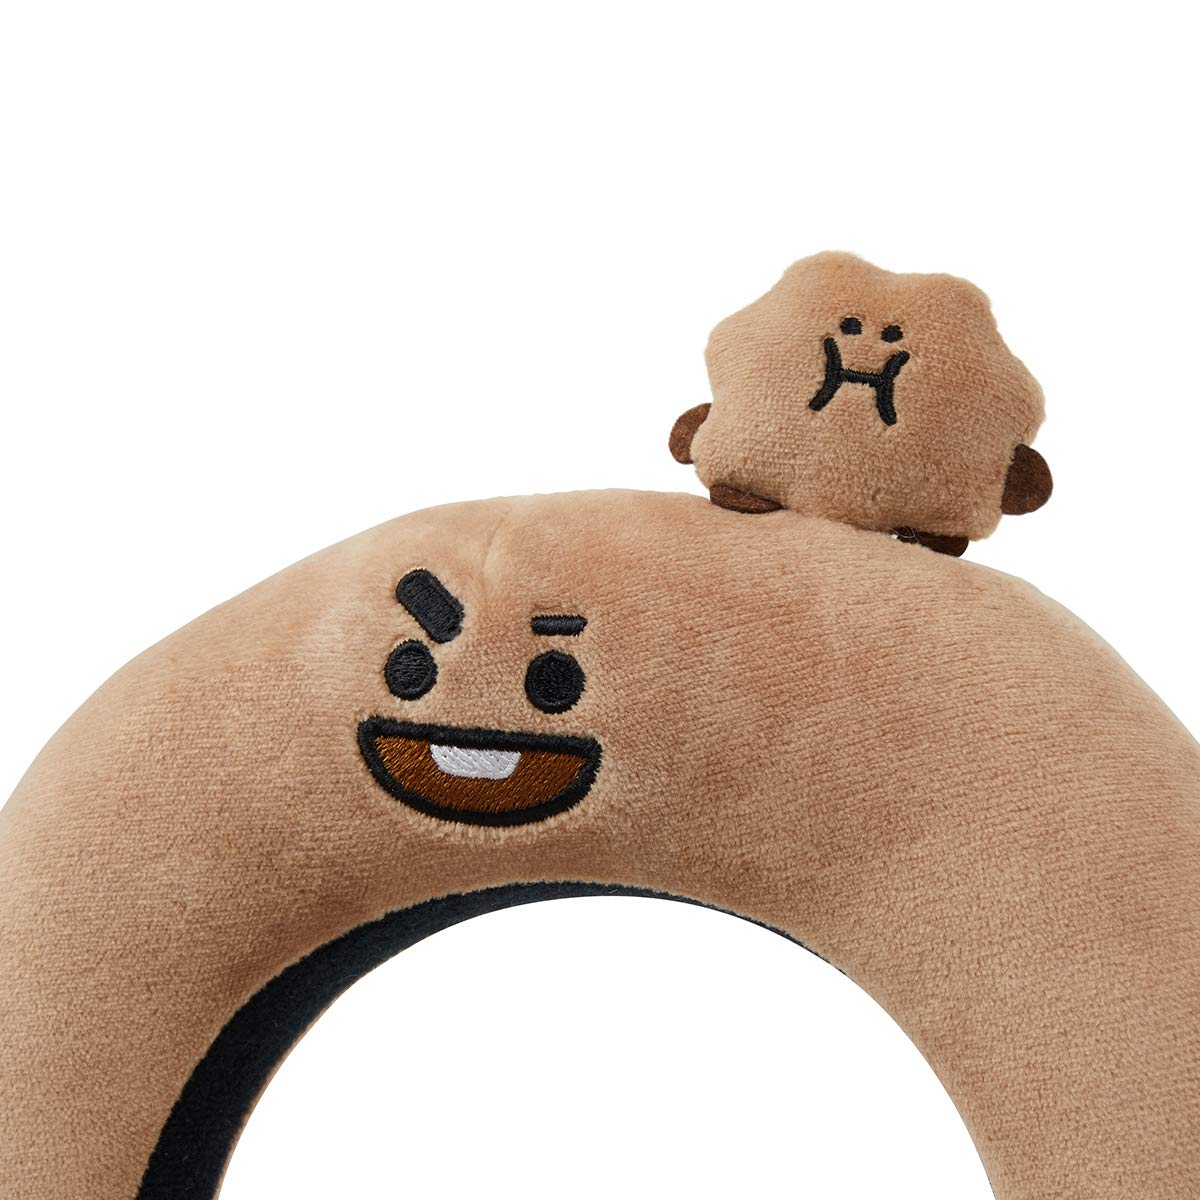 COOKY Character Face Plush Padded Headbands BT21 Official Merchandise by Line Friends